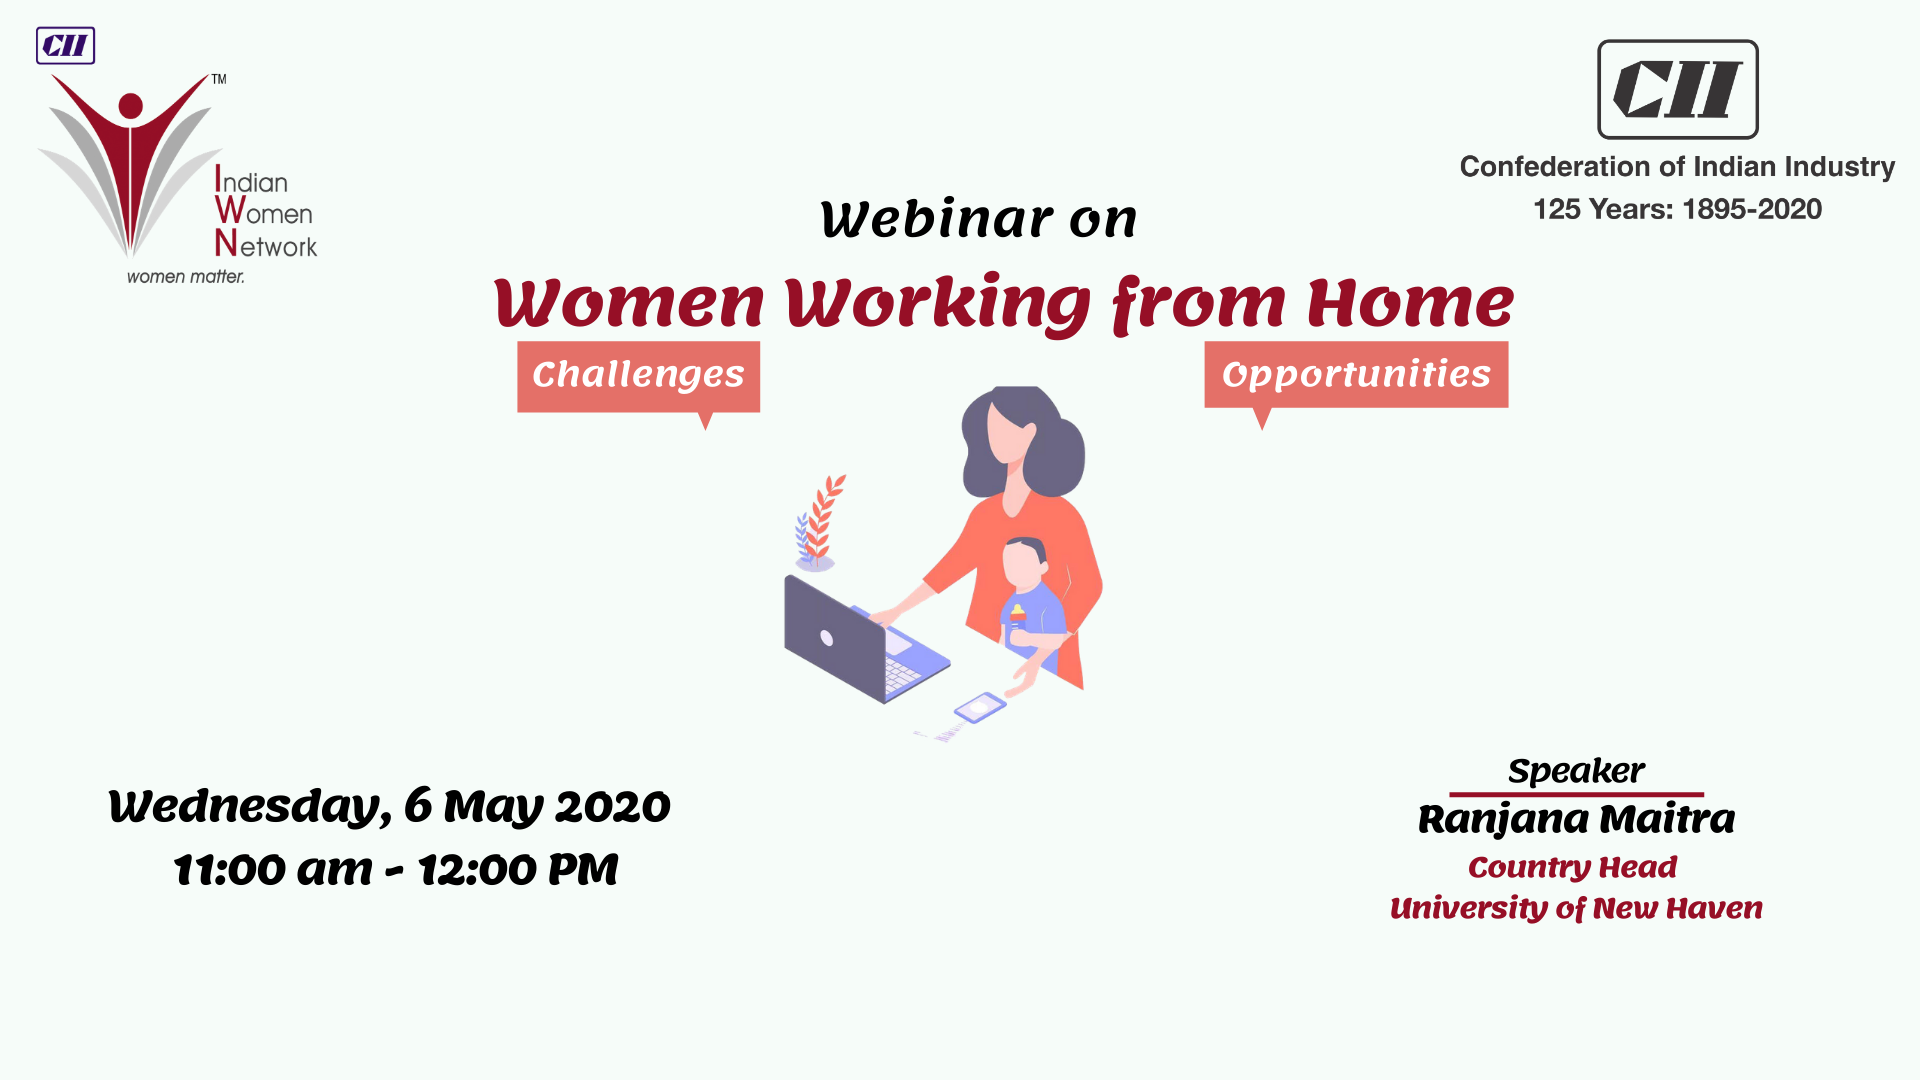 CII IWN WR - Webinar on Women Working from Home - Challenges and Opportunities